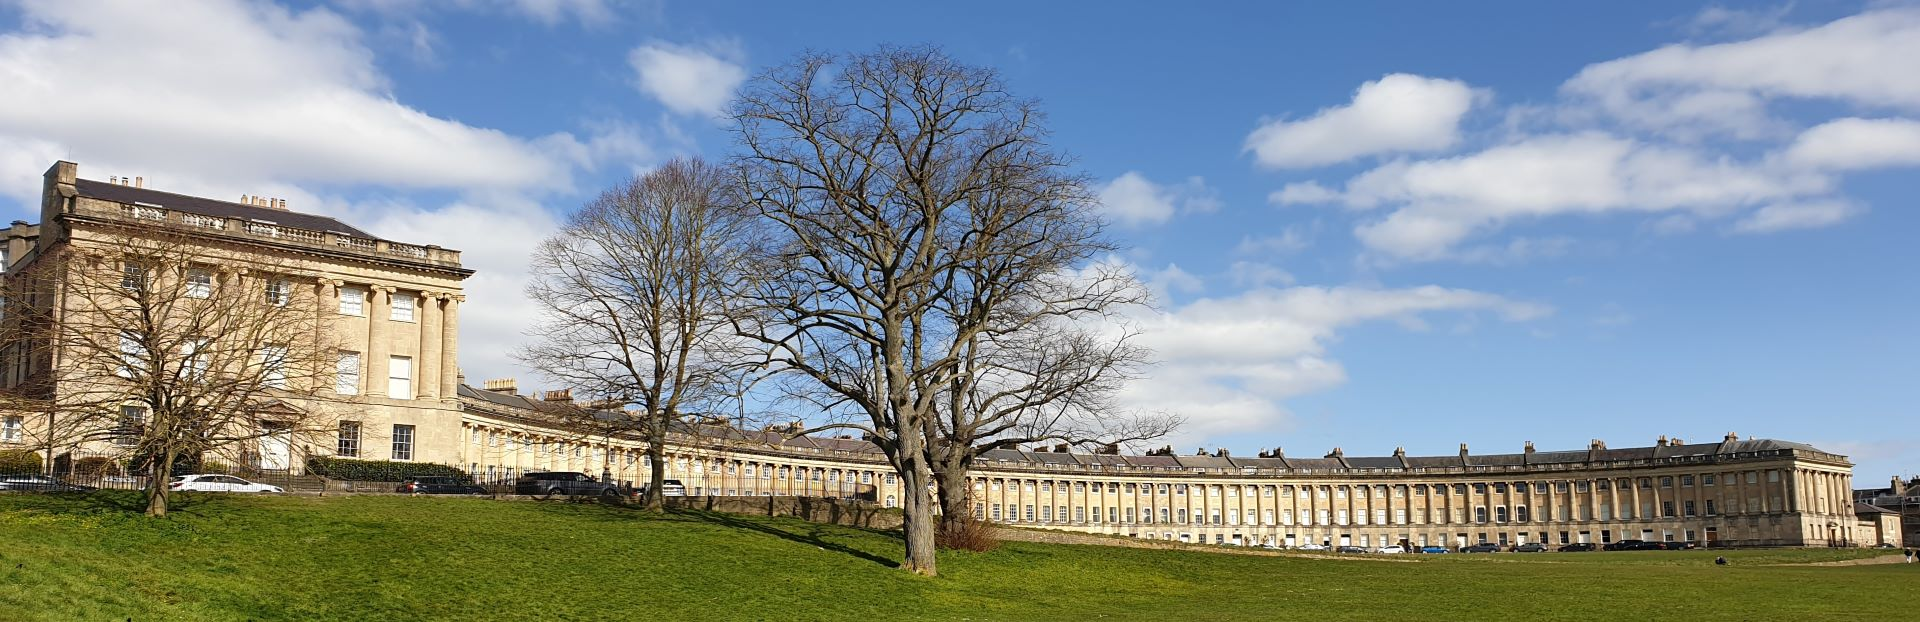 Royal crescent   vm version   1920x622